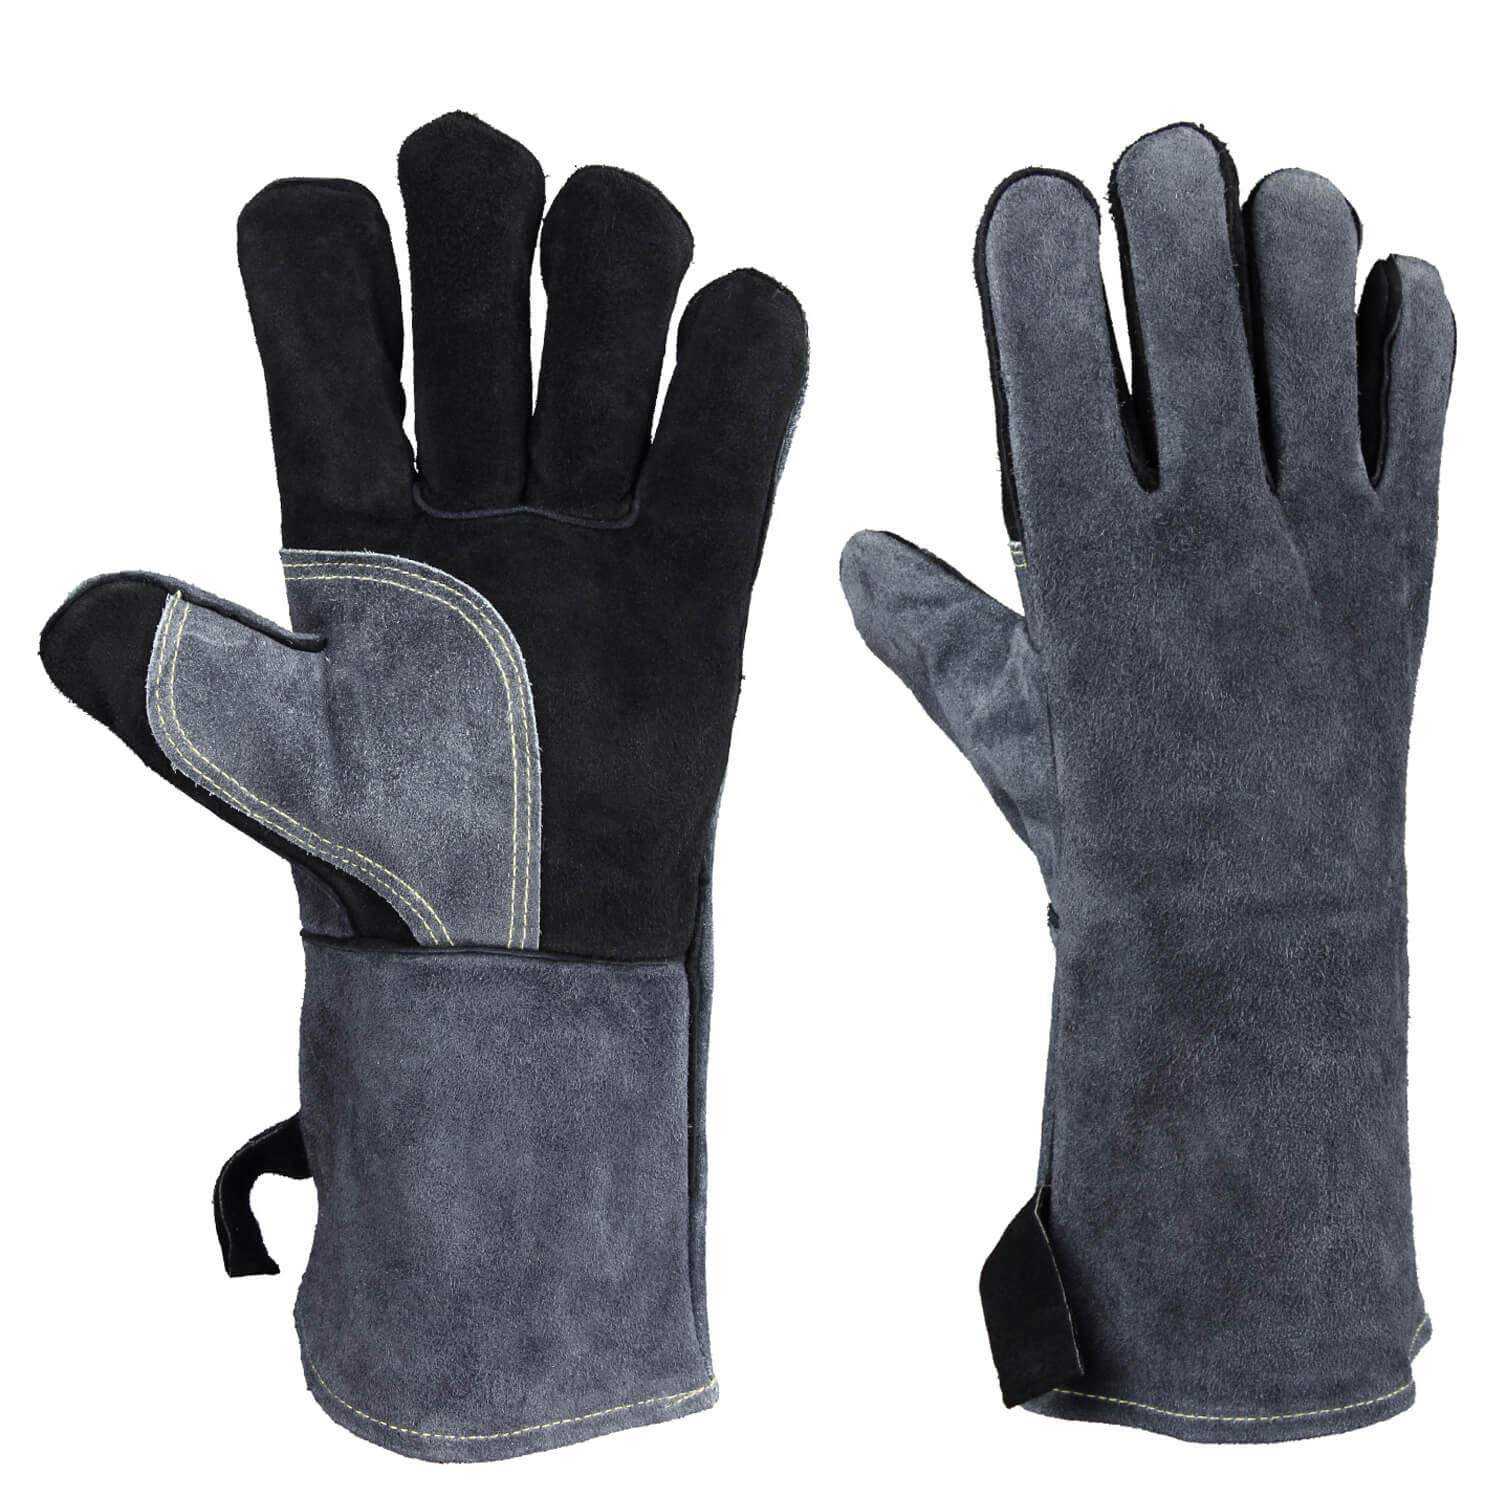 OZERO Leather Welding Gloves Heat Resistant Flame Retardant Glove for Fireplace Wood Stove BBQ Grilling